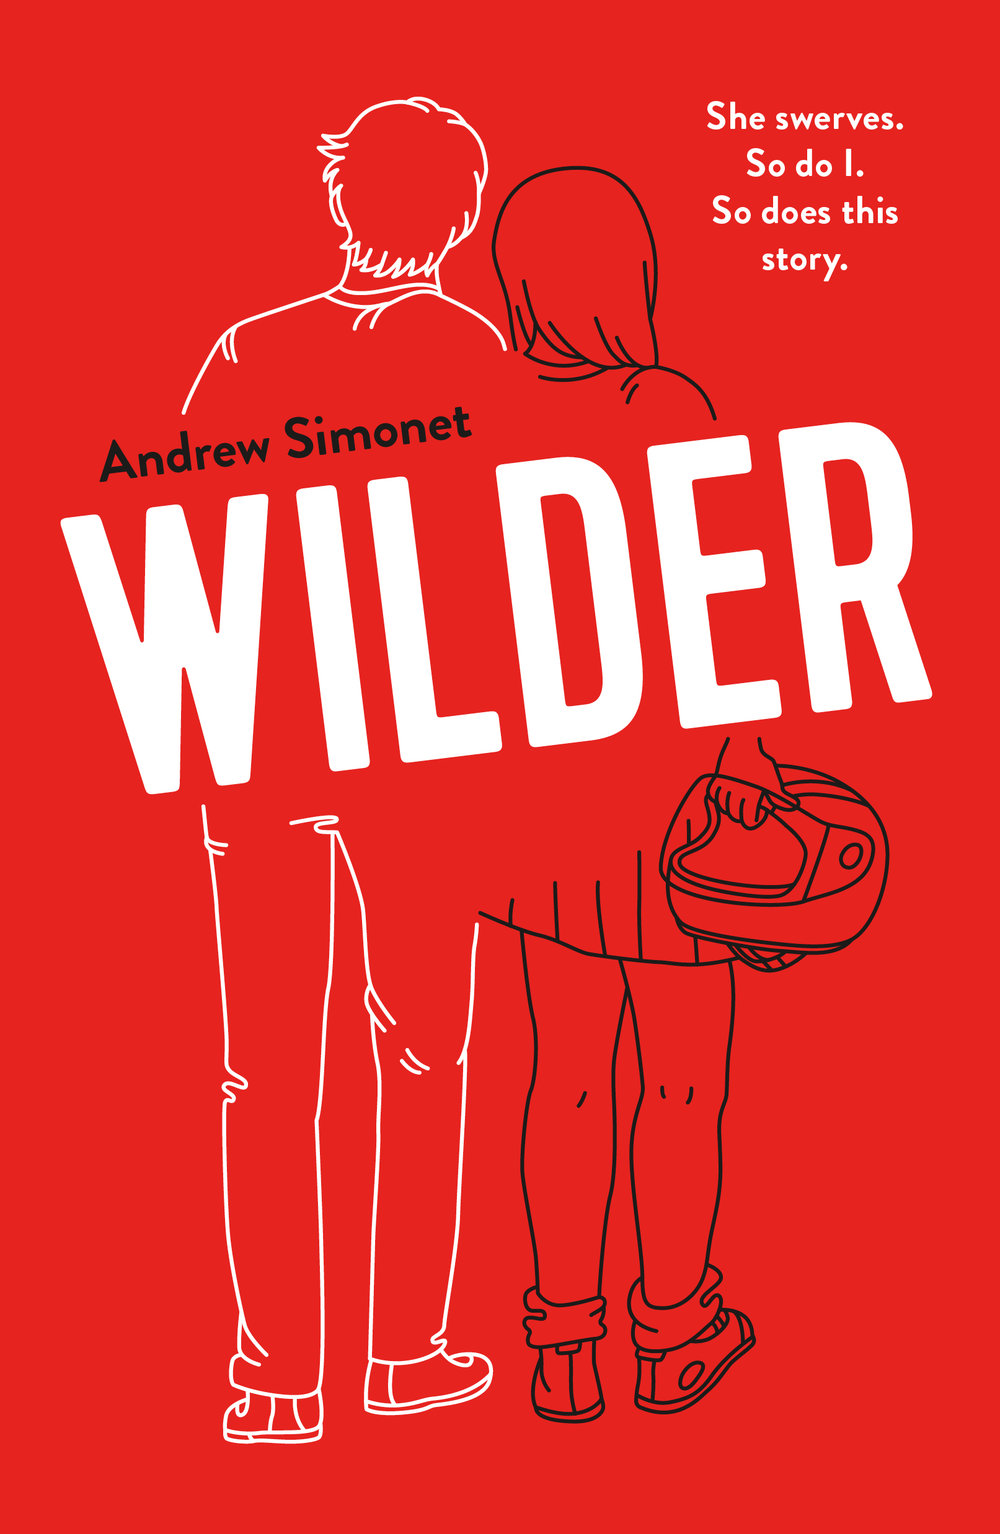 Wilder, Andrew Simonet For Farrar, Straus and Giroux BYR. Illustration by Aimee Fleck.